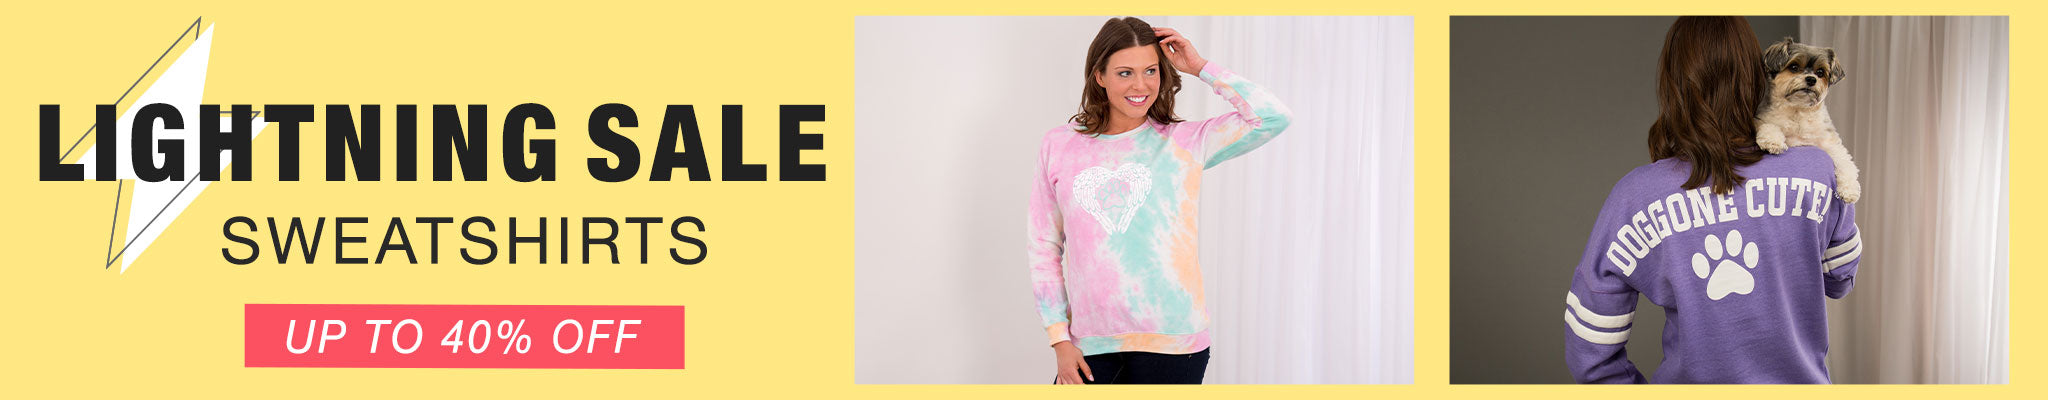 Sweatshirts Lightning Sale